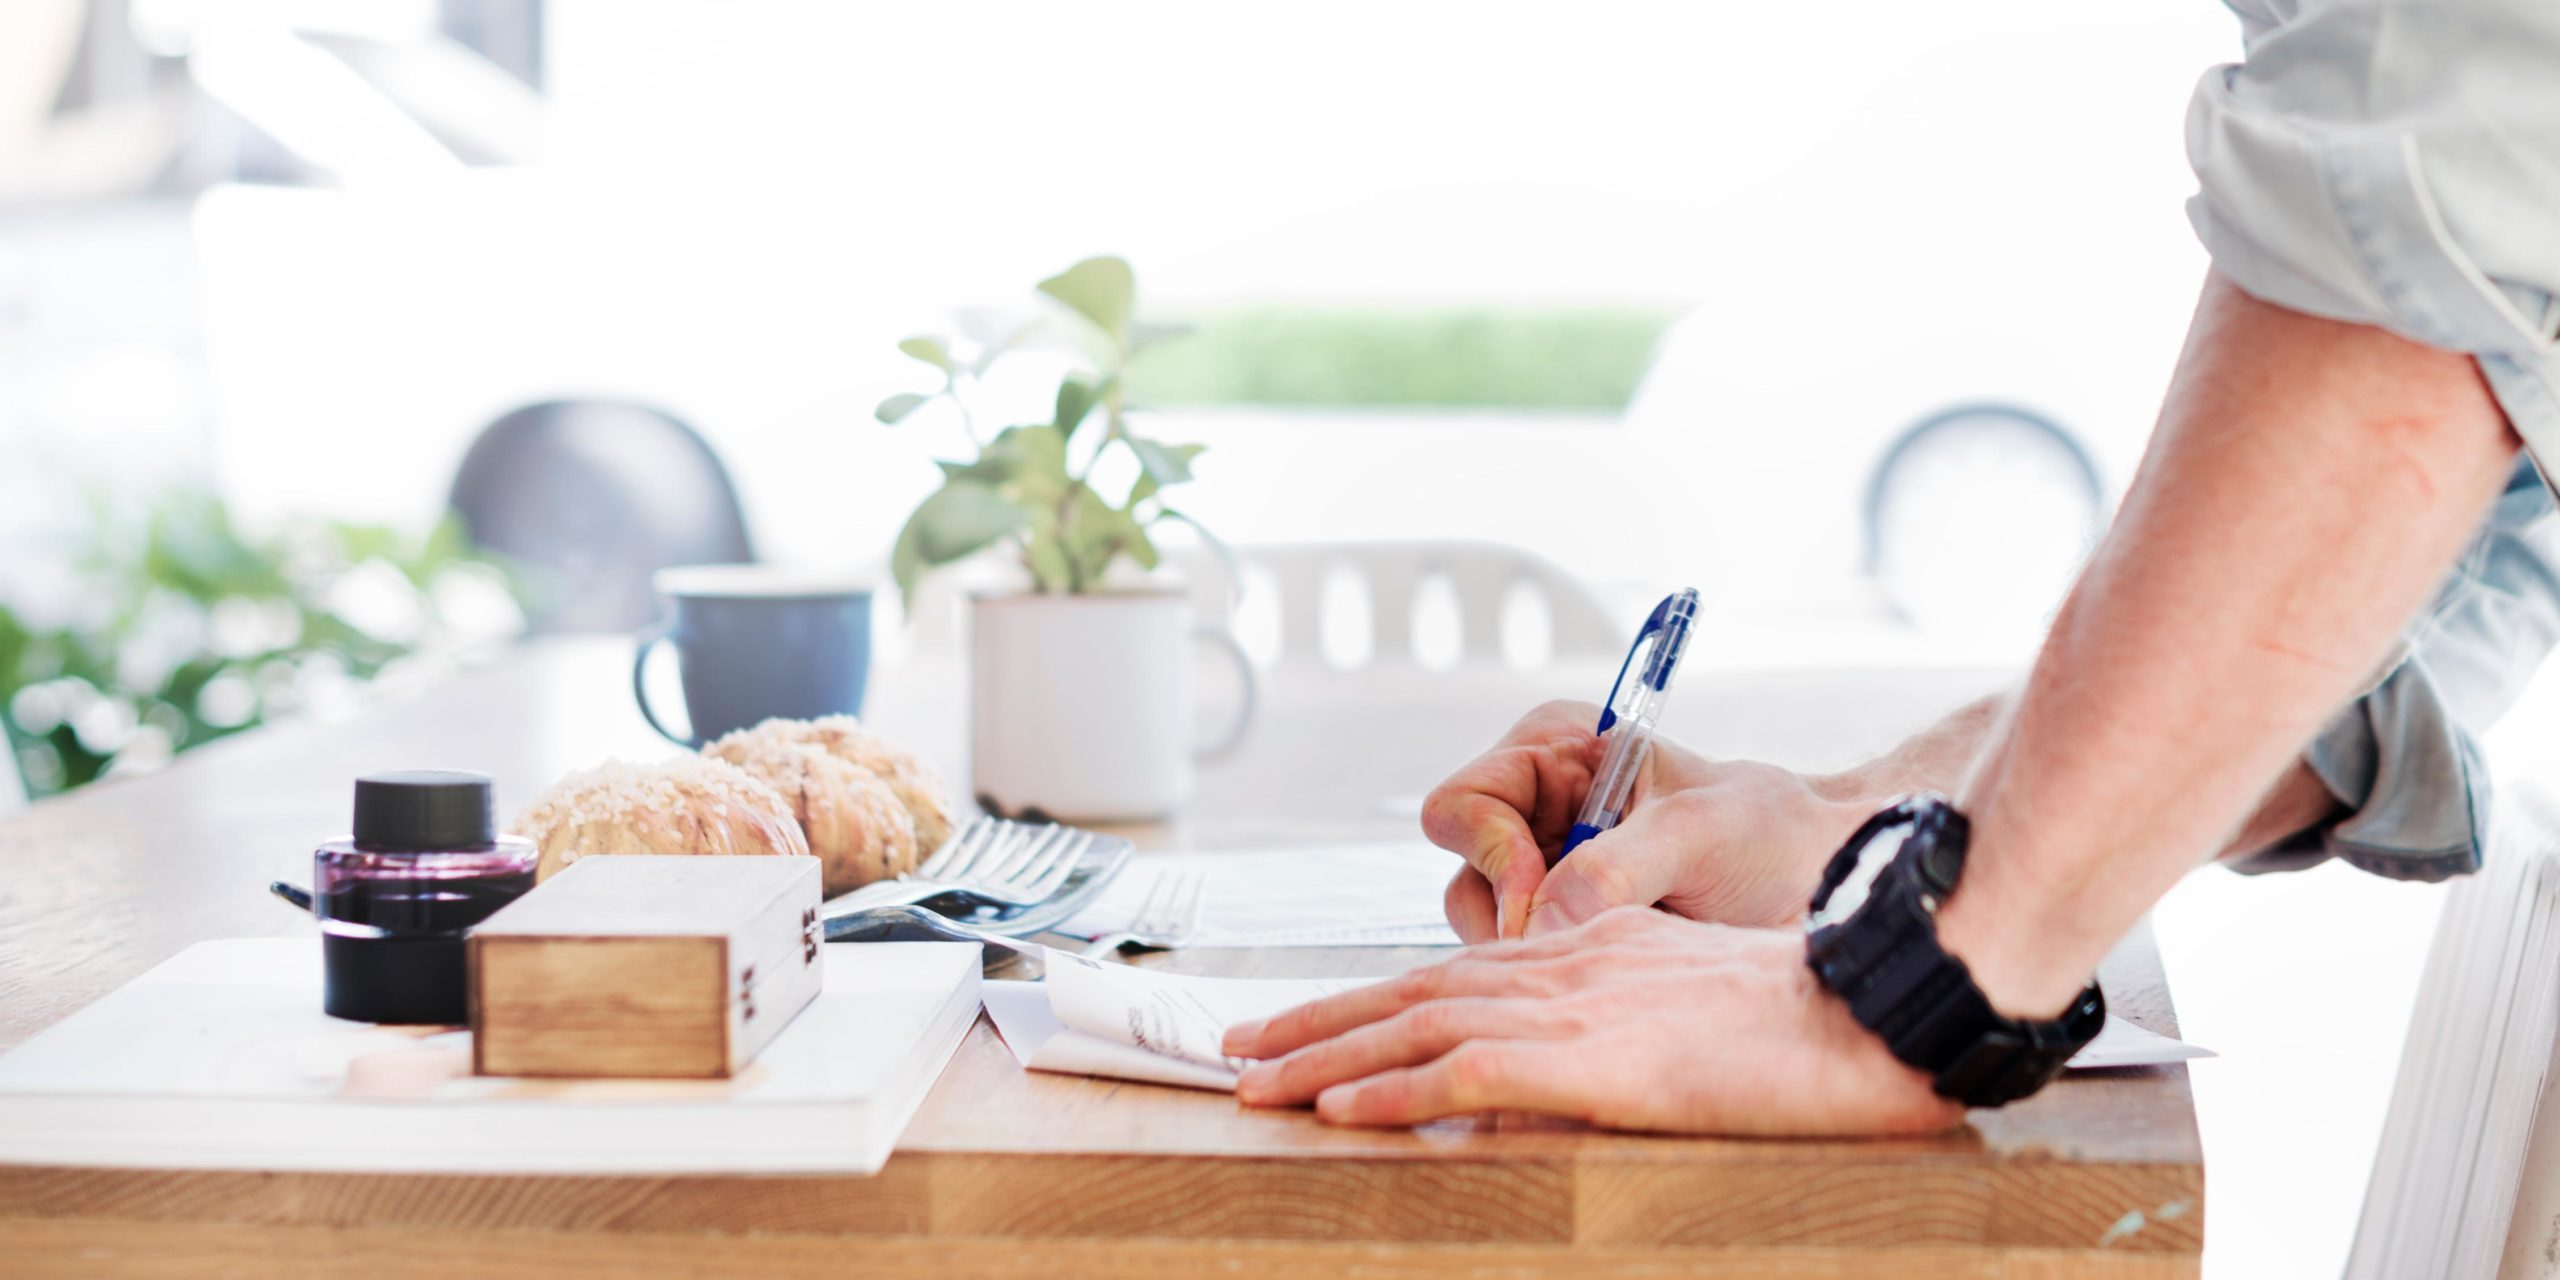 11 Best Recommendations for Improving Business Writing Skills